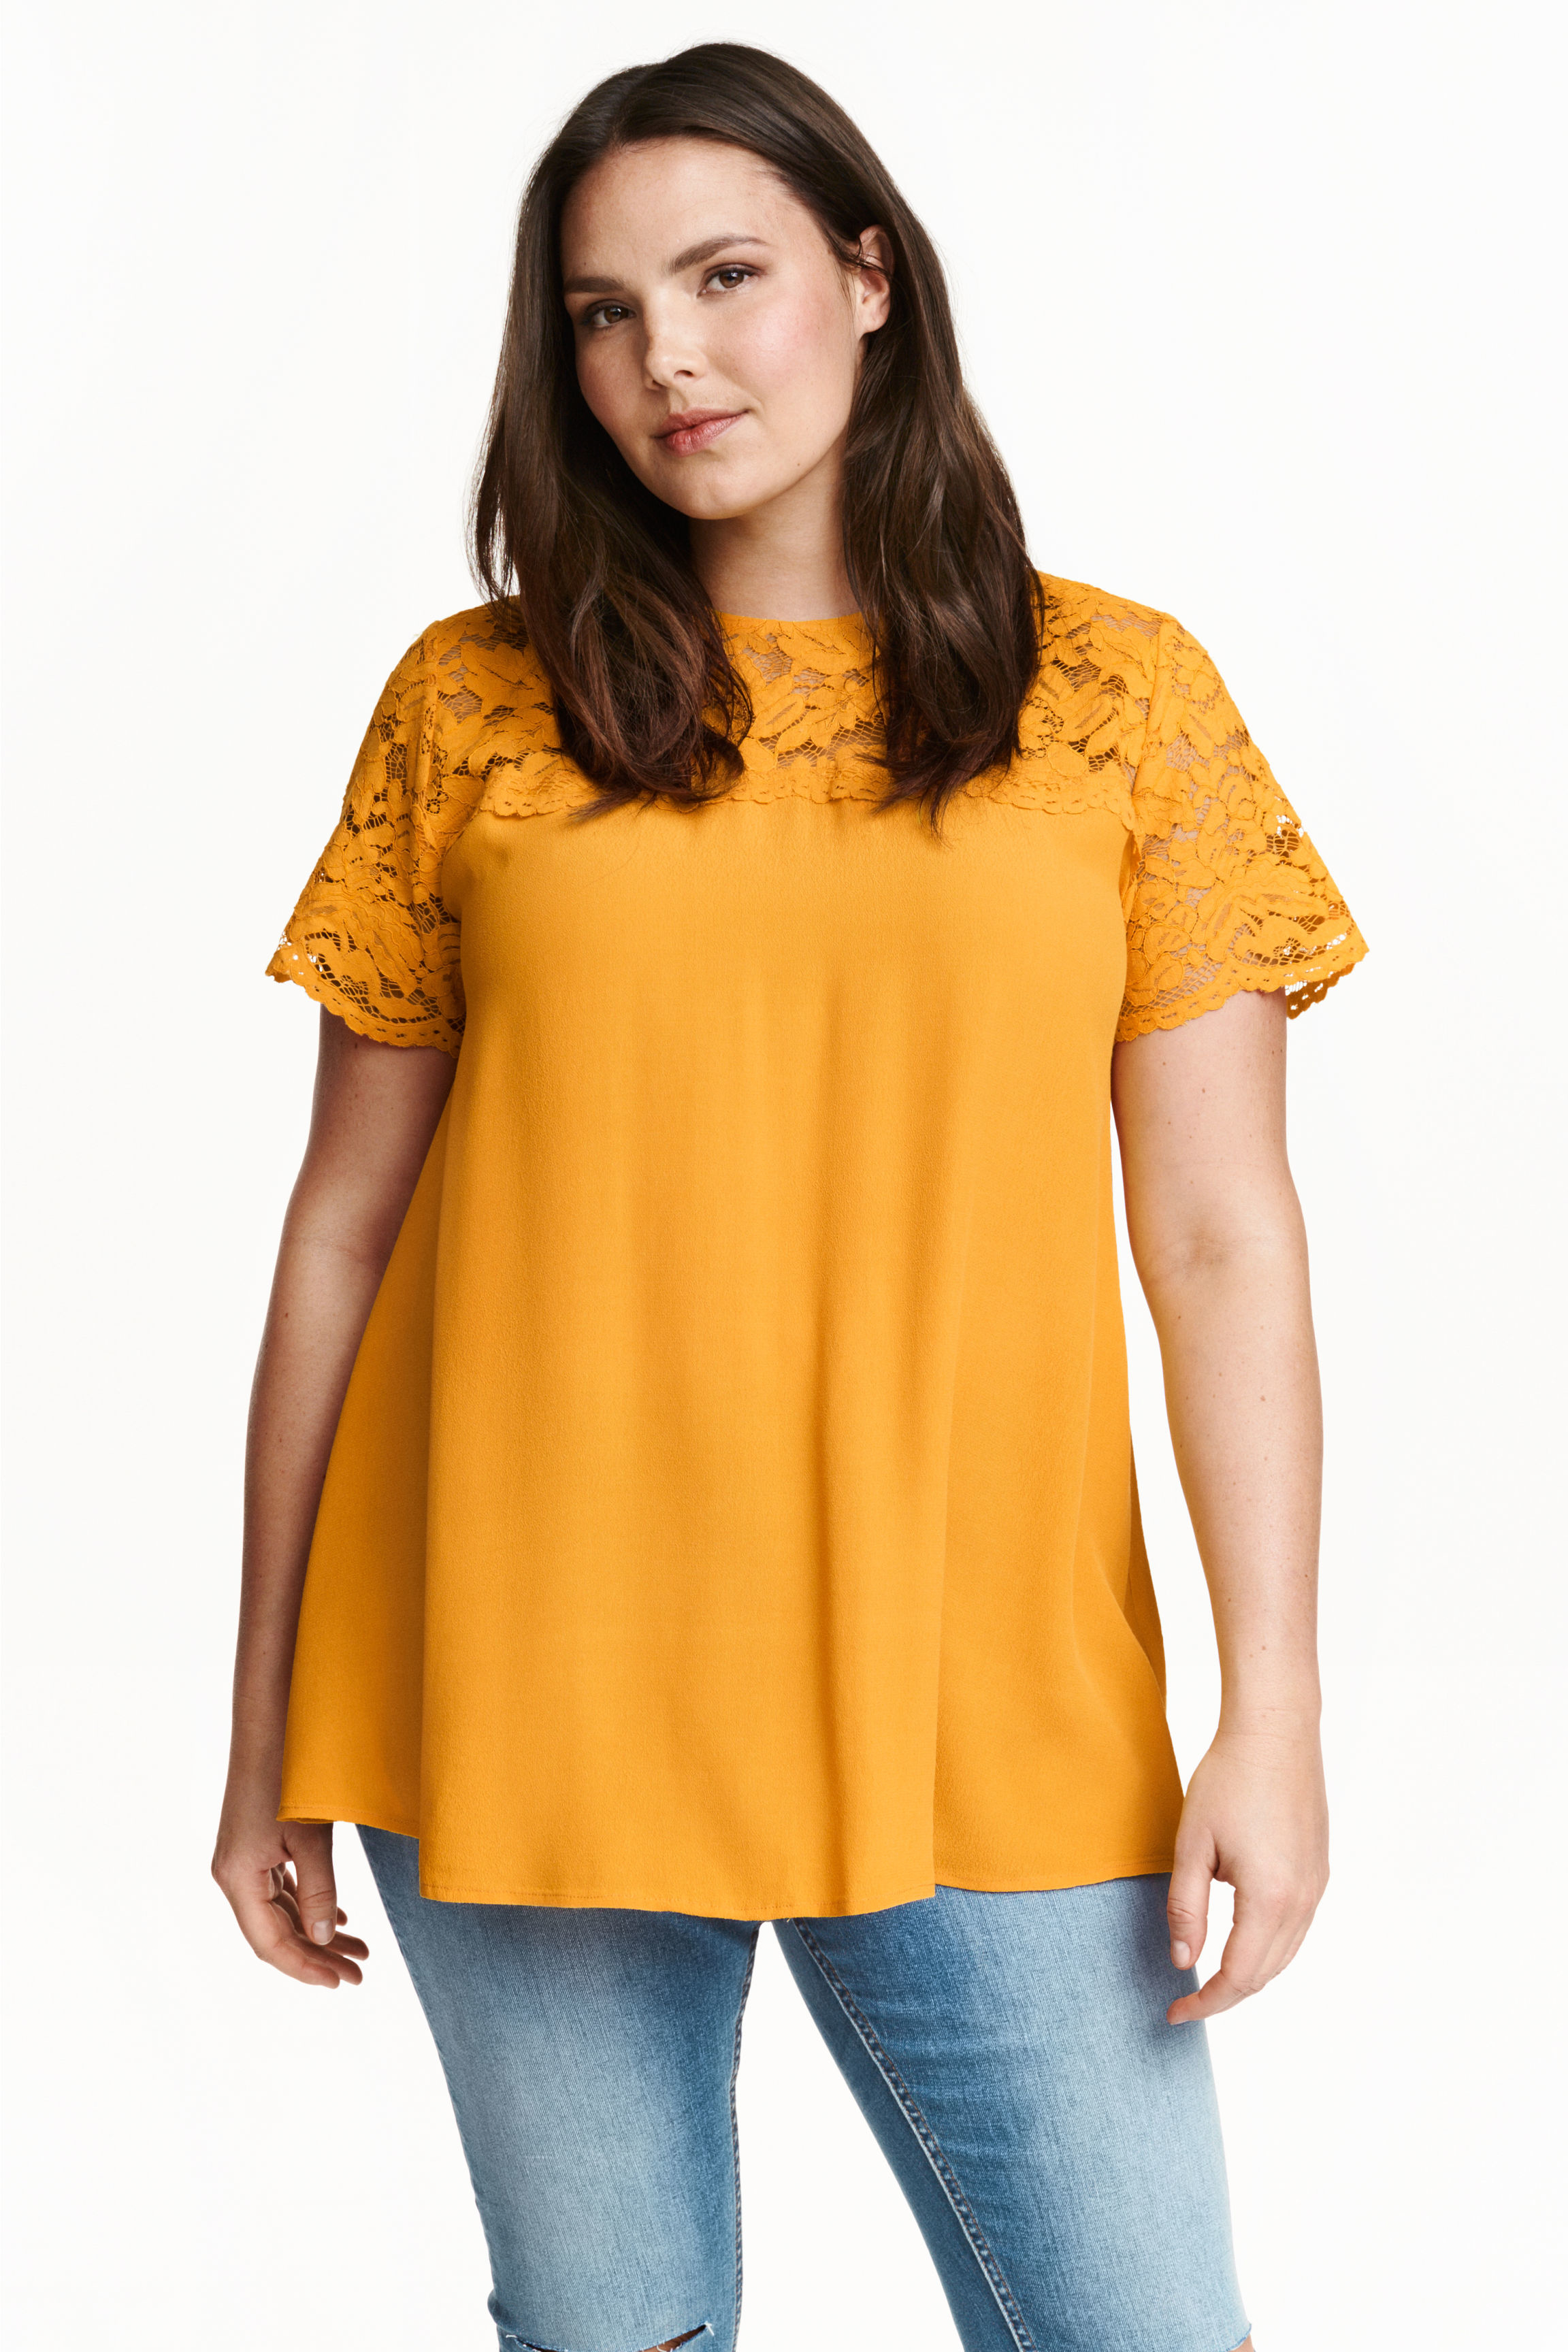 Yellow Blouse Forever 21